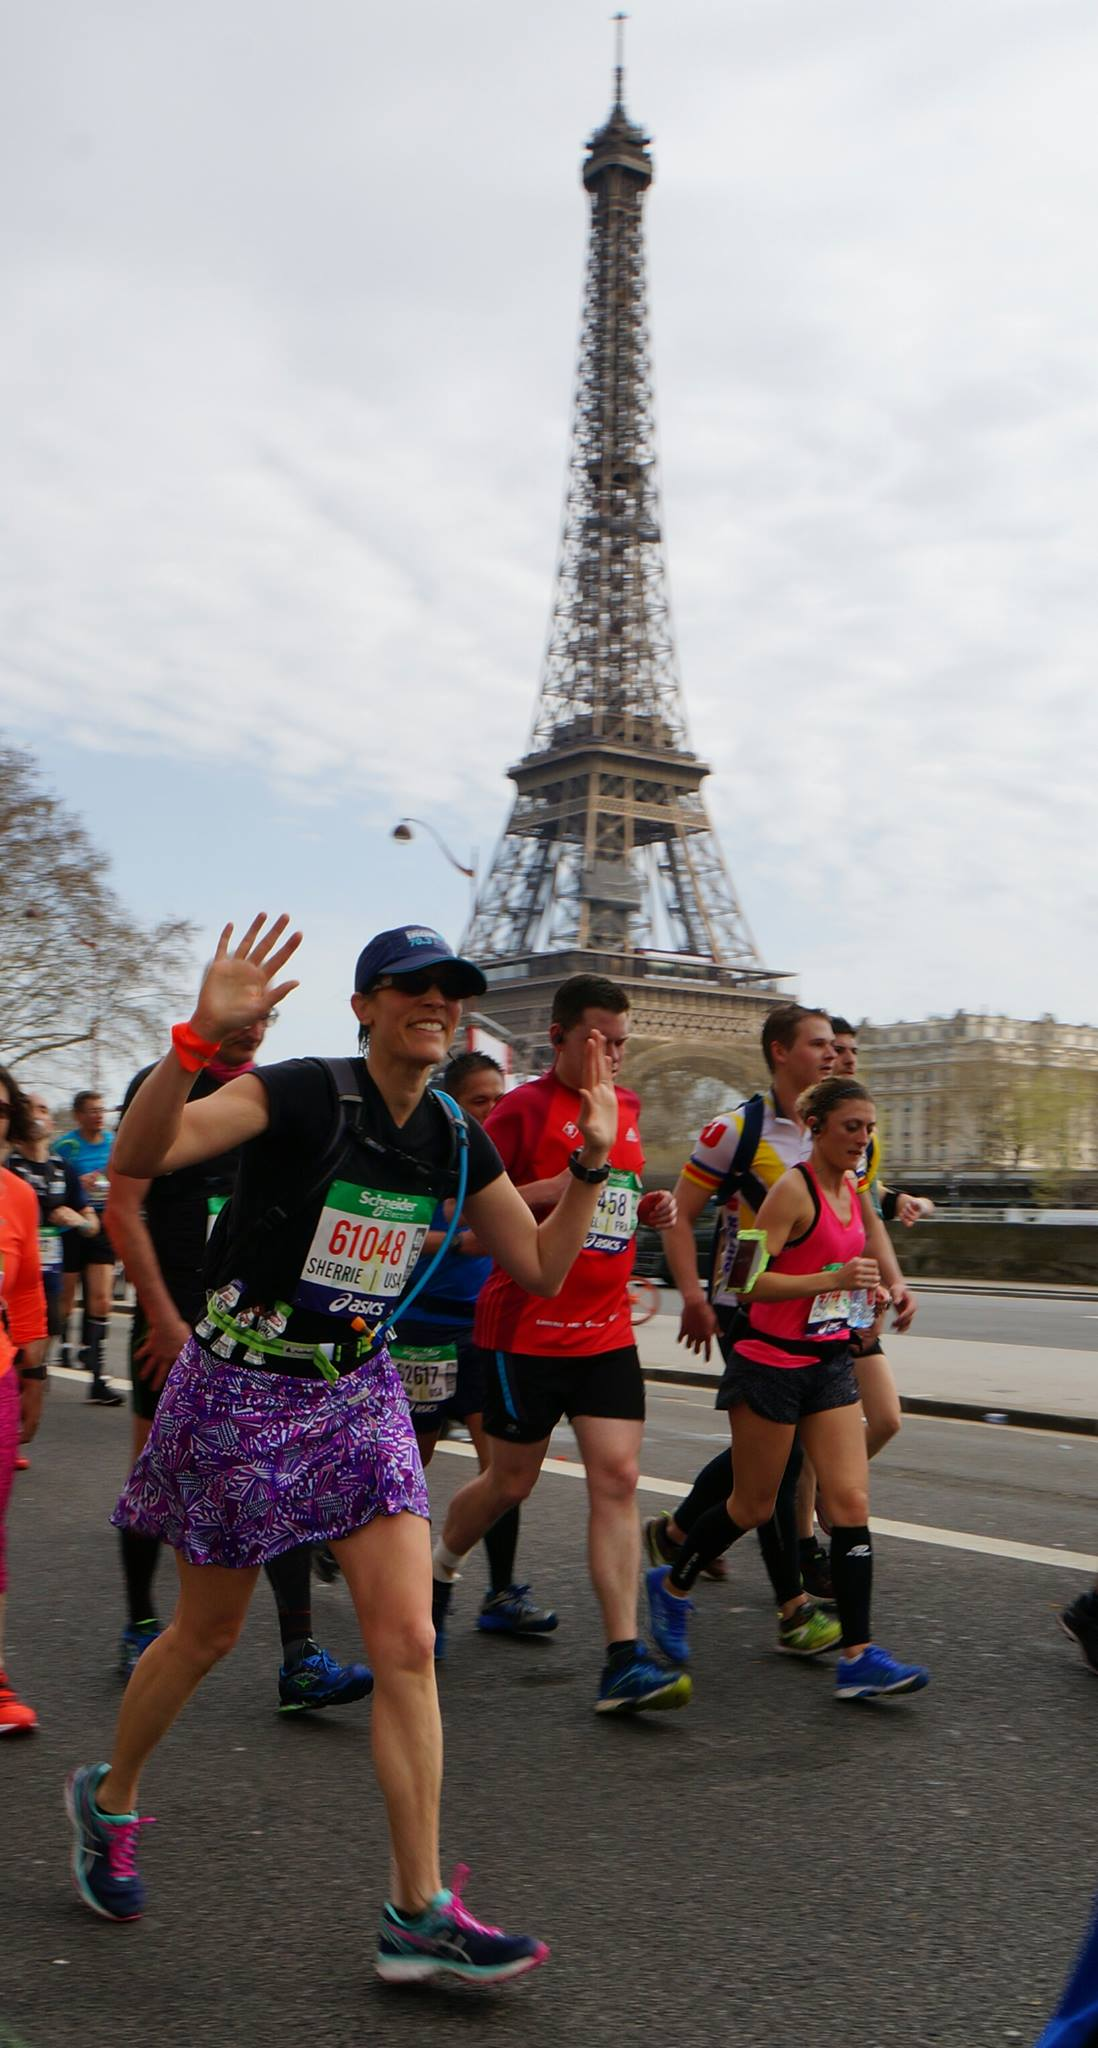 Sherrie Crow runs the Paris Marathon